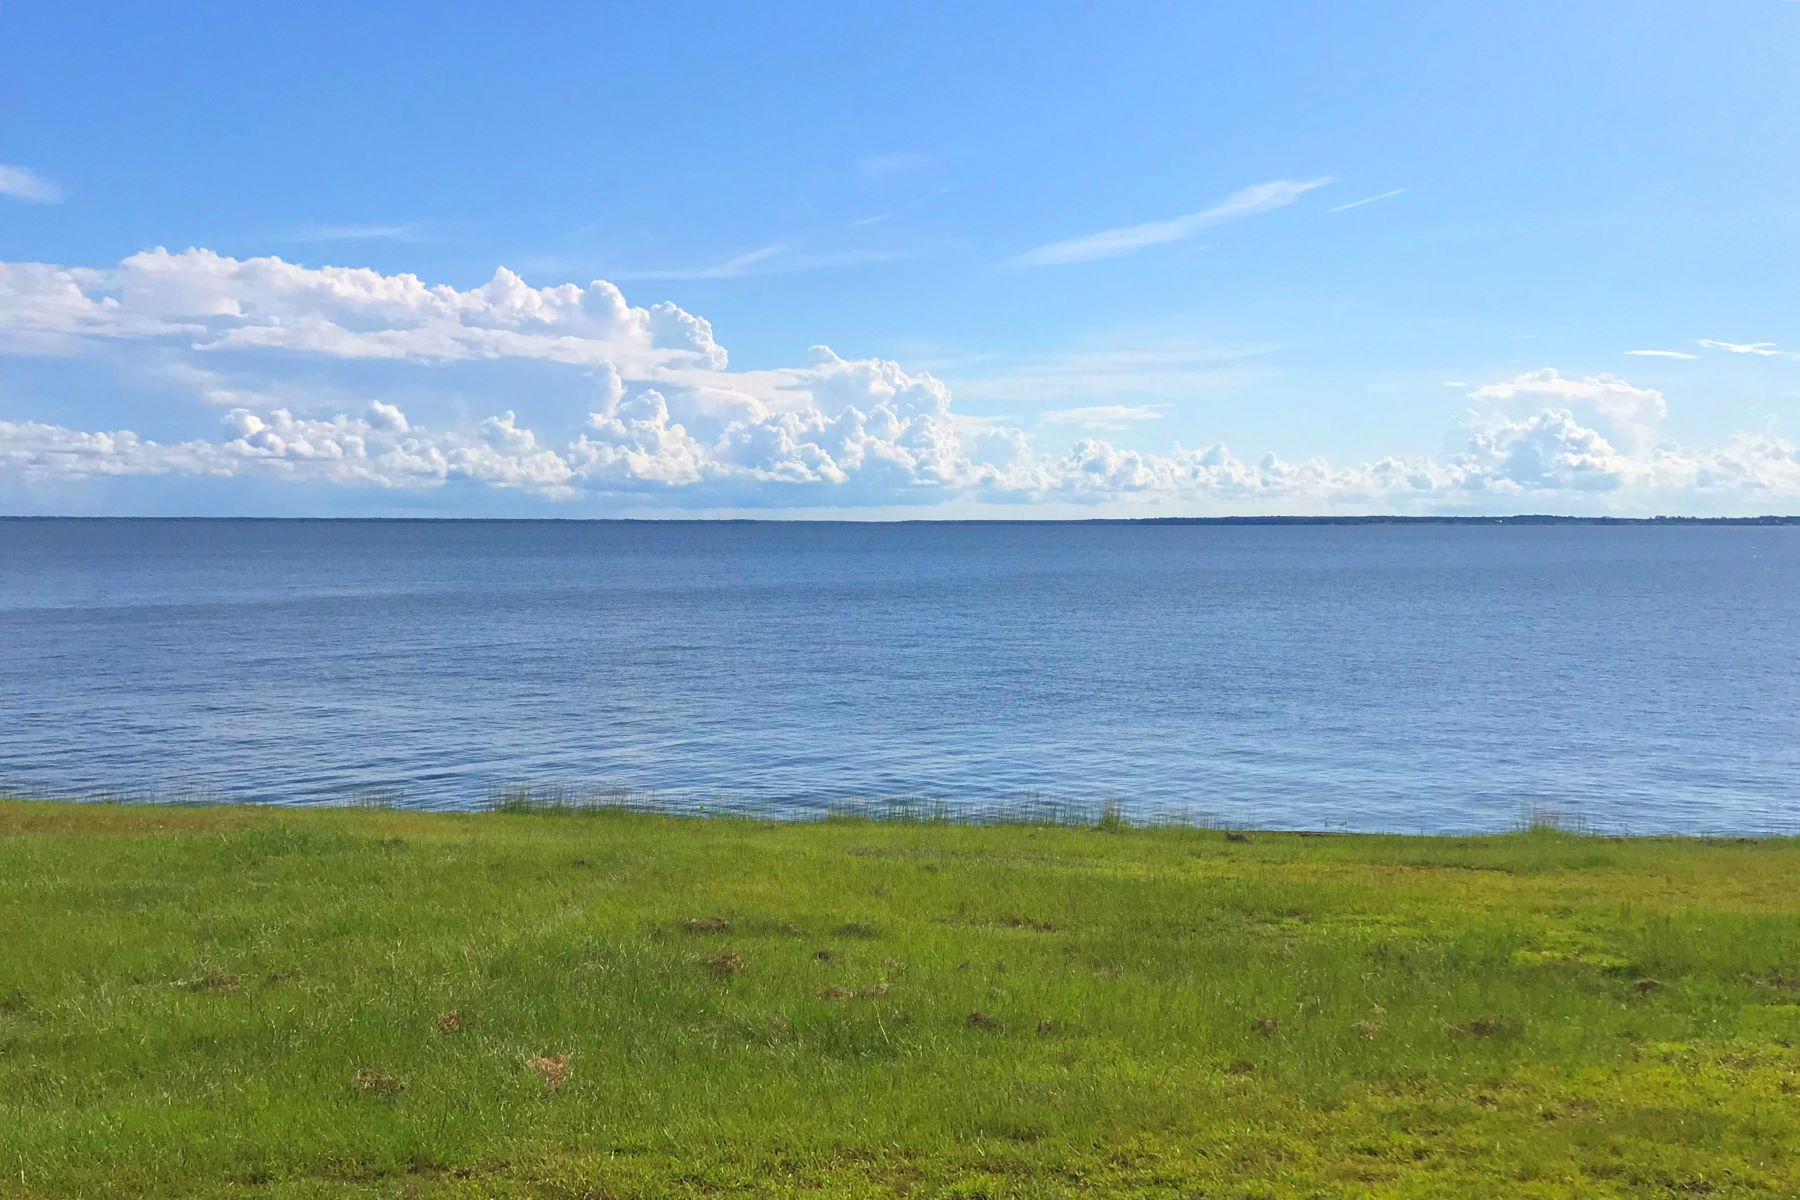 Terreno por un Venta en EDENTON BAY PLANTATION WATERFRONT LOT 10 370 Bay Pt Drive Edenton, Carolina Del Norte 27932 Estados Unidos